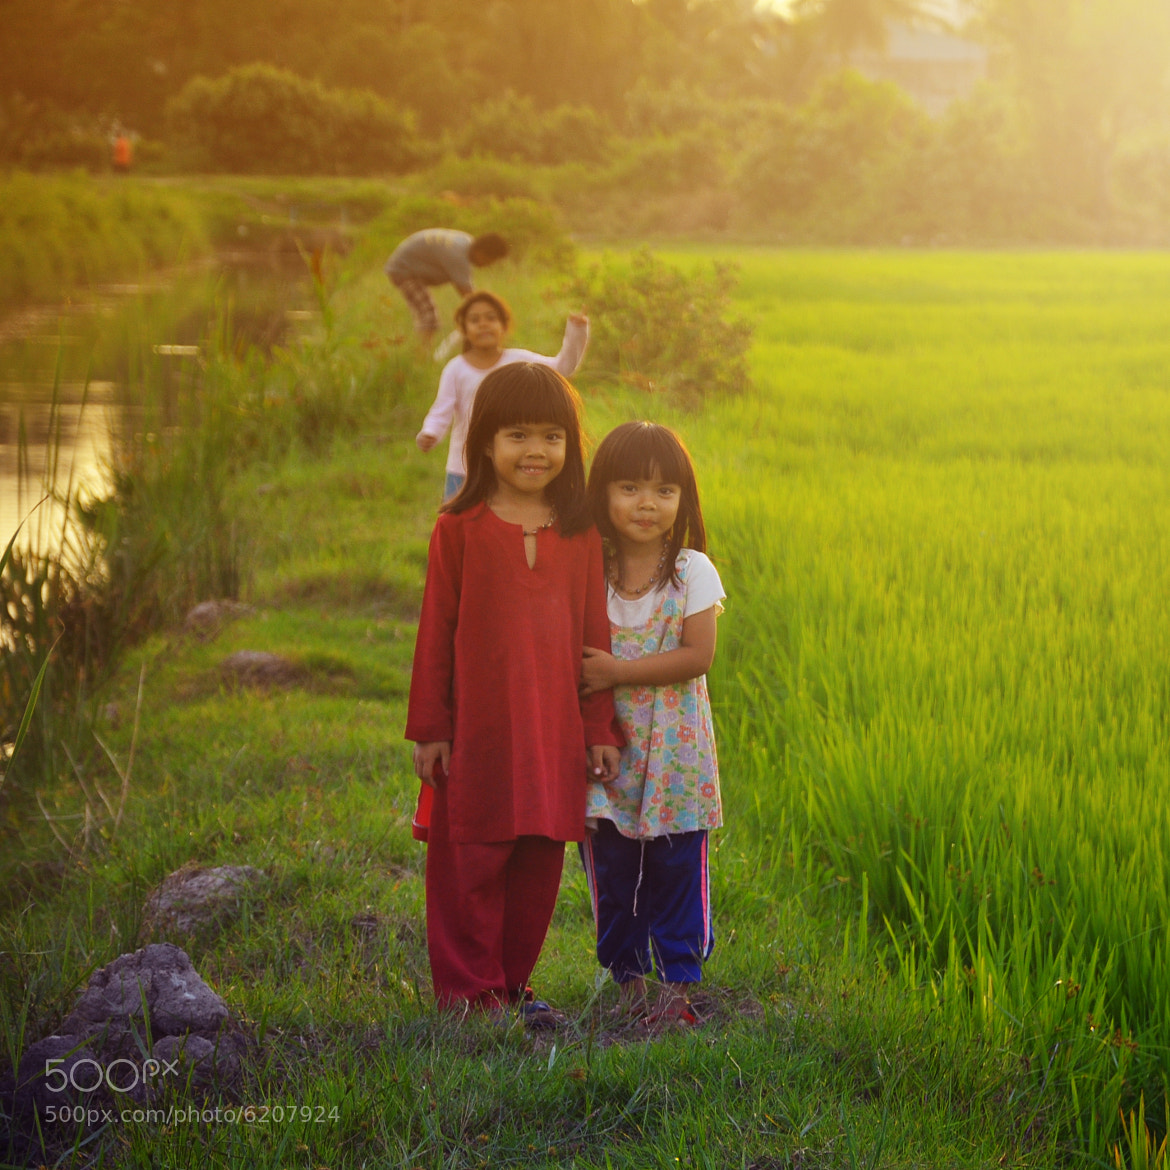 Photograph Our Moment To Remember by Firdaus Radzi on 500px